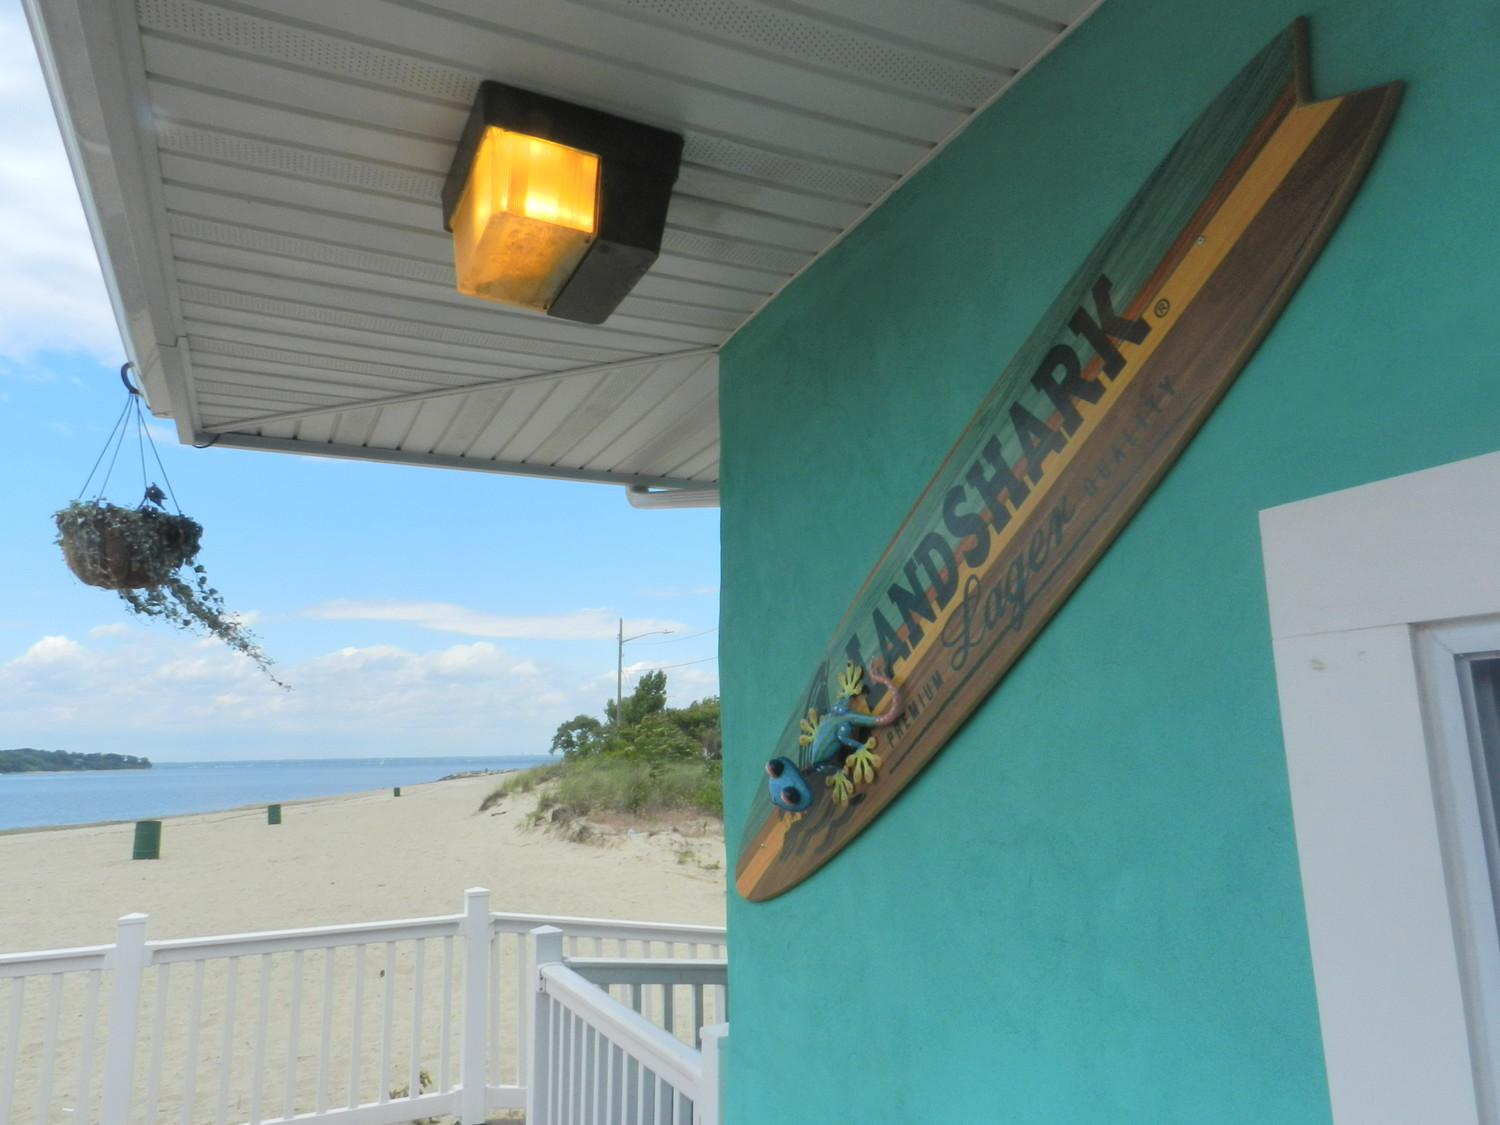 The restaurant's bright blue exterior makes it a standout spot at Tappen Beach.